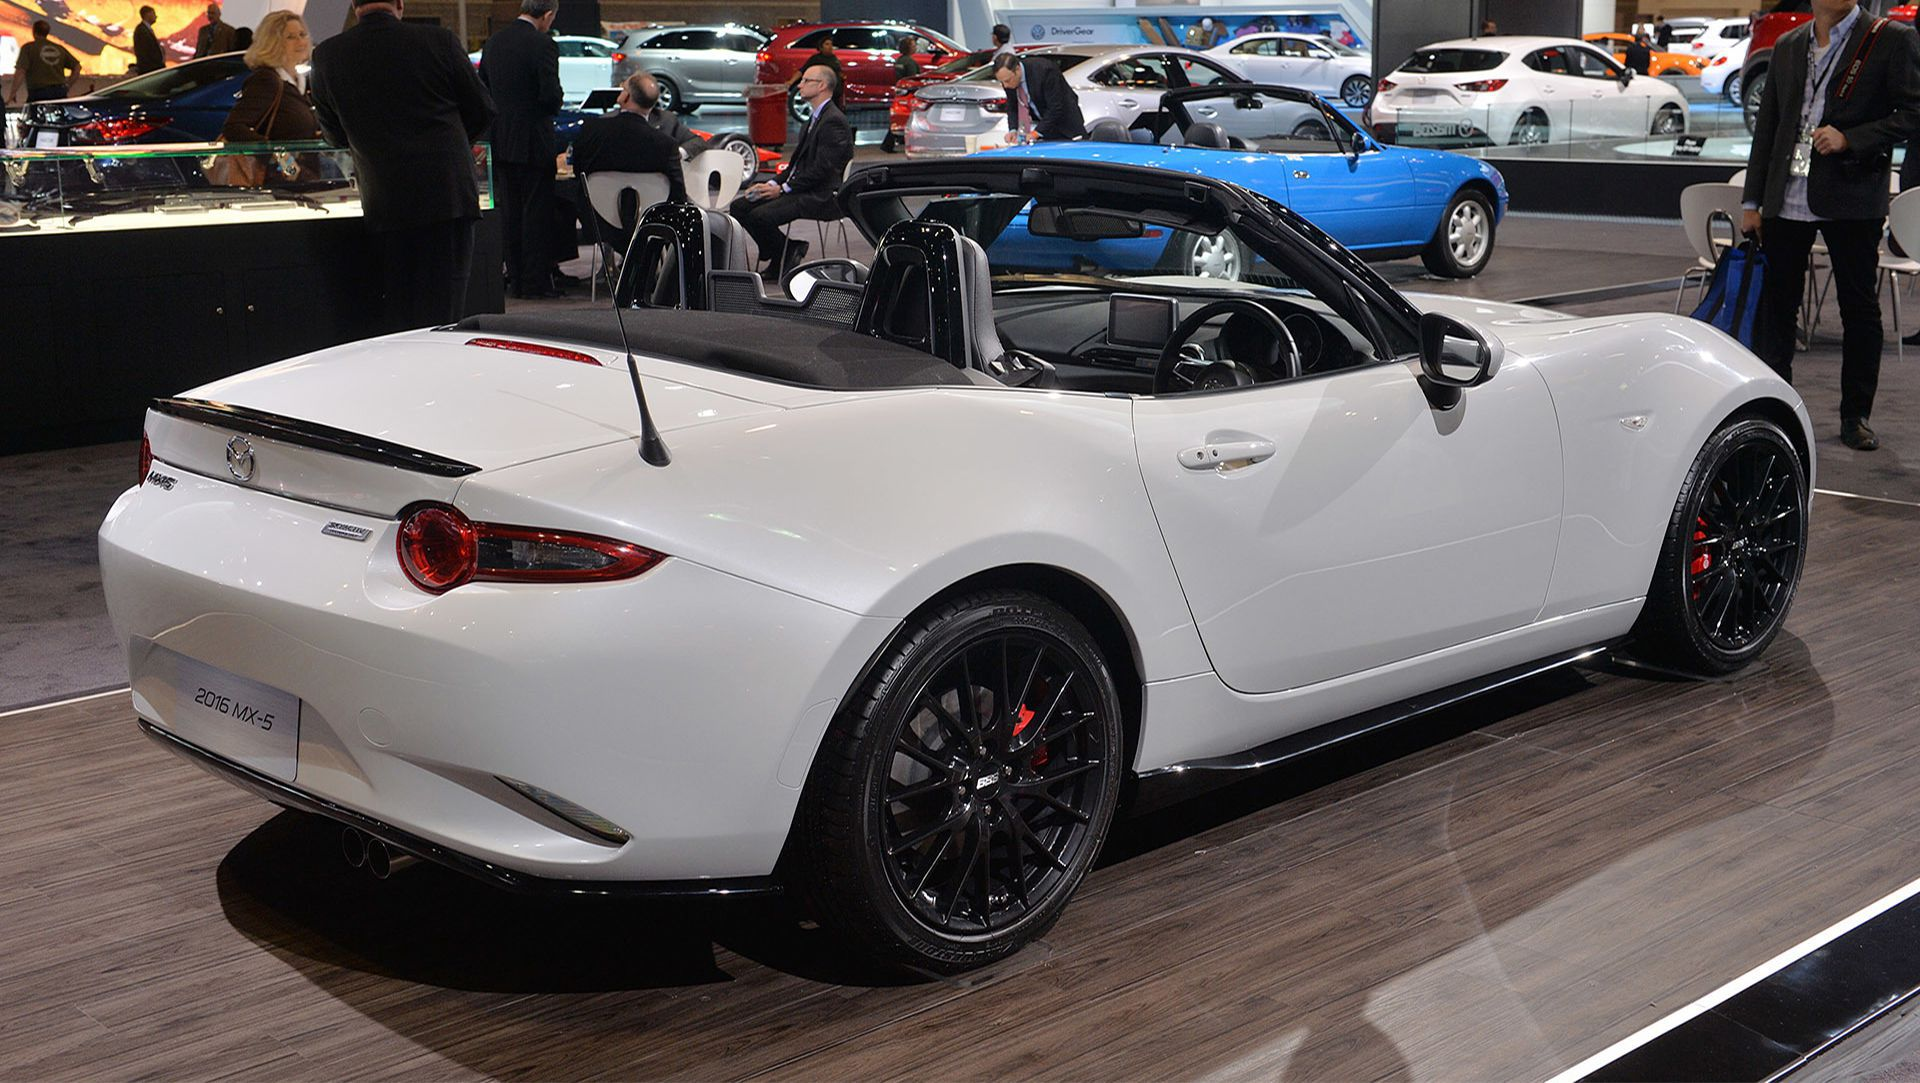 2015 Chicago Auto Show : Mazda Specs New MX 5 Miata With Accessories ...